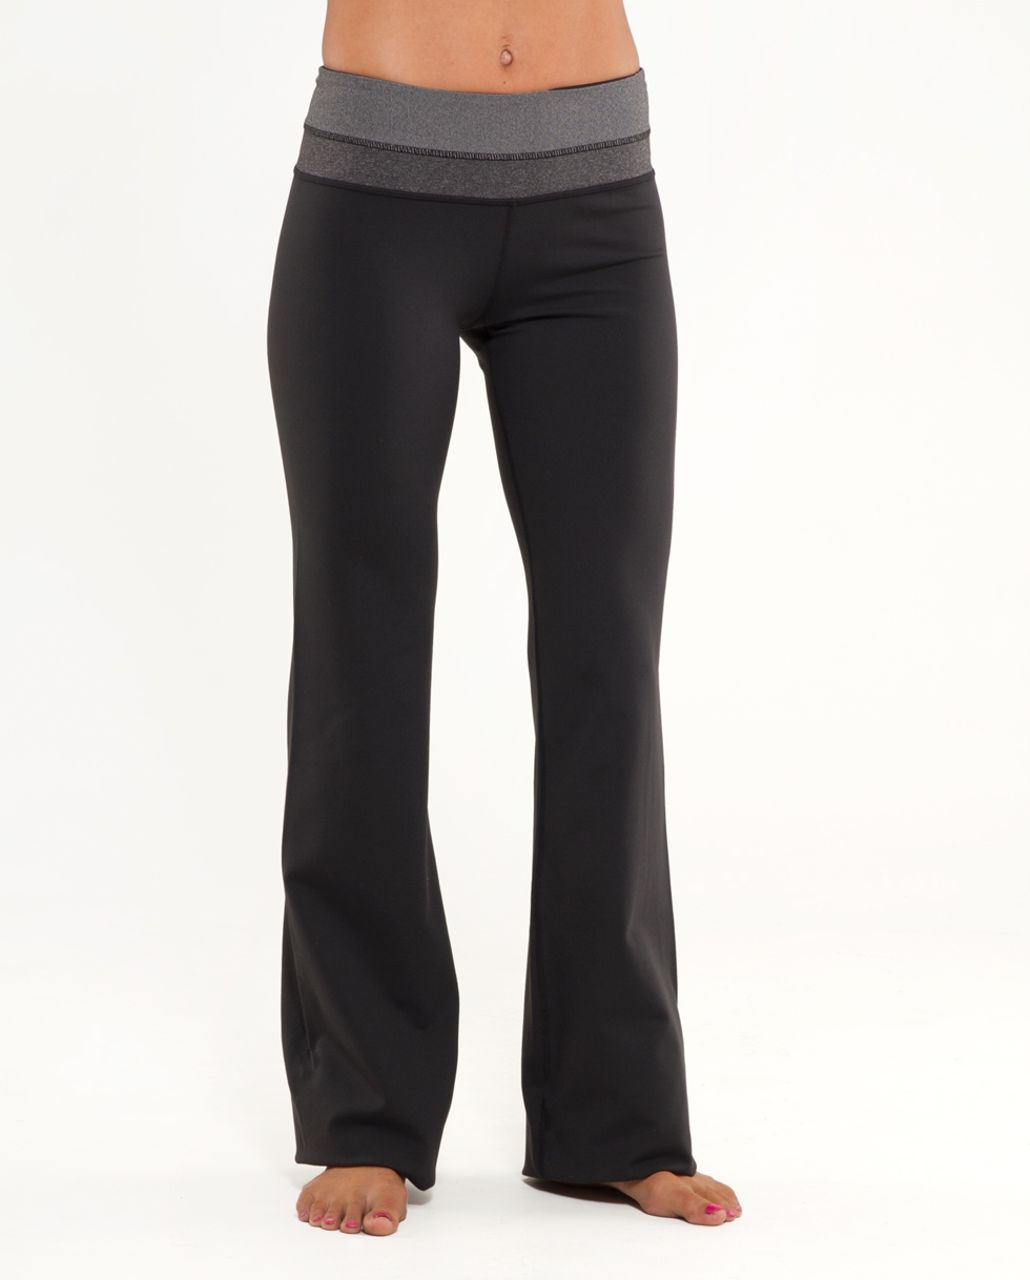 Lululemon Groove Pant (Regular) - Black /  White Black Microstripe /  Heathered Black